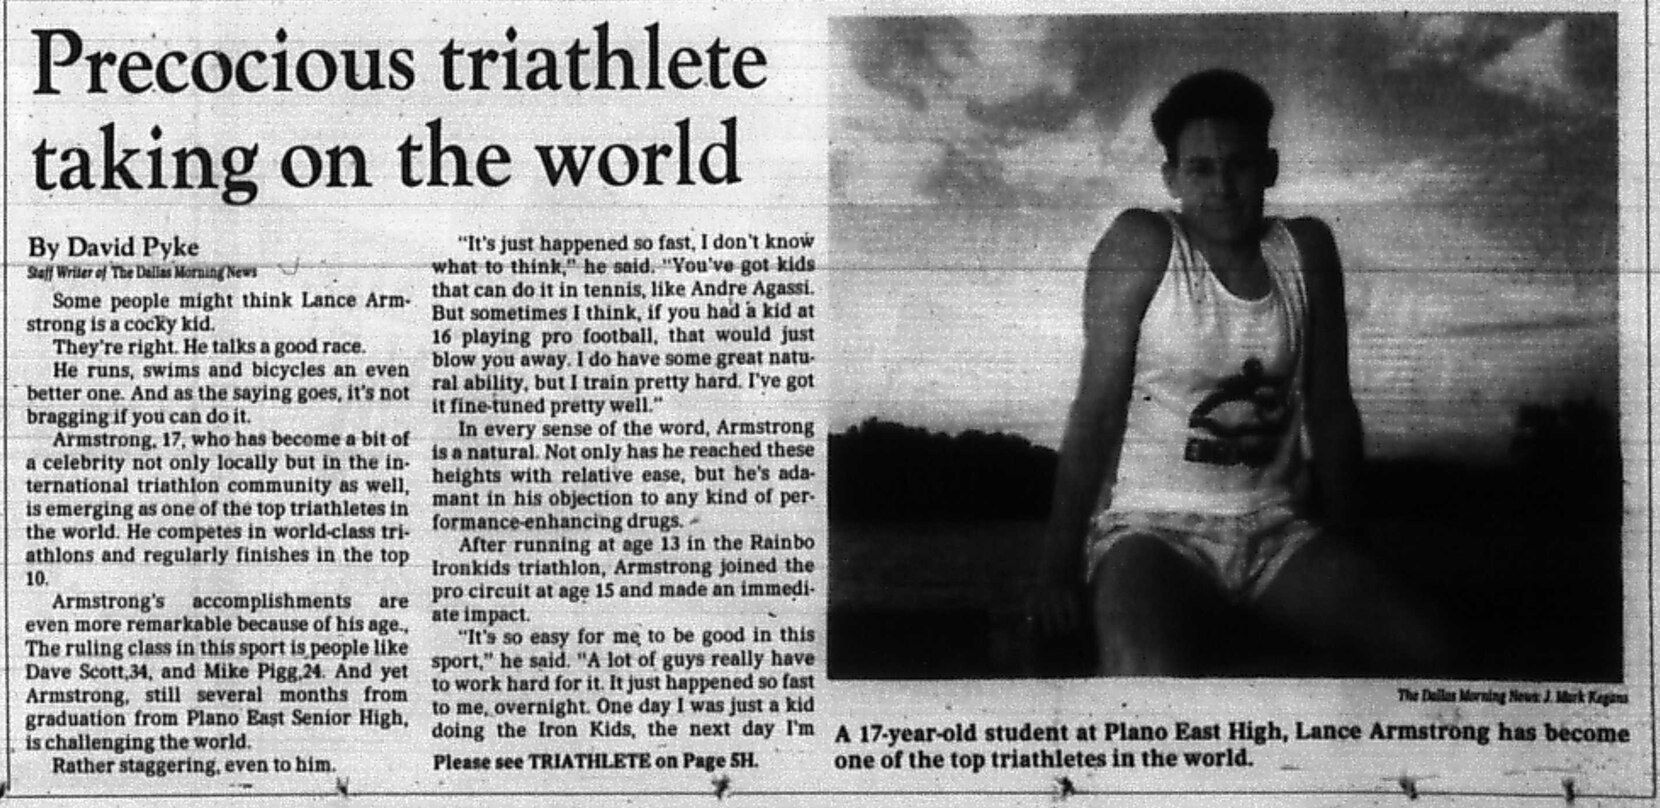 Oct. 22, 1988 article